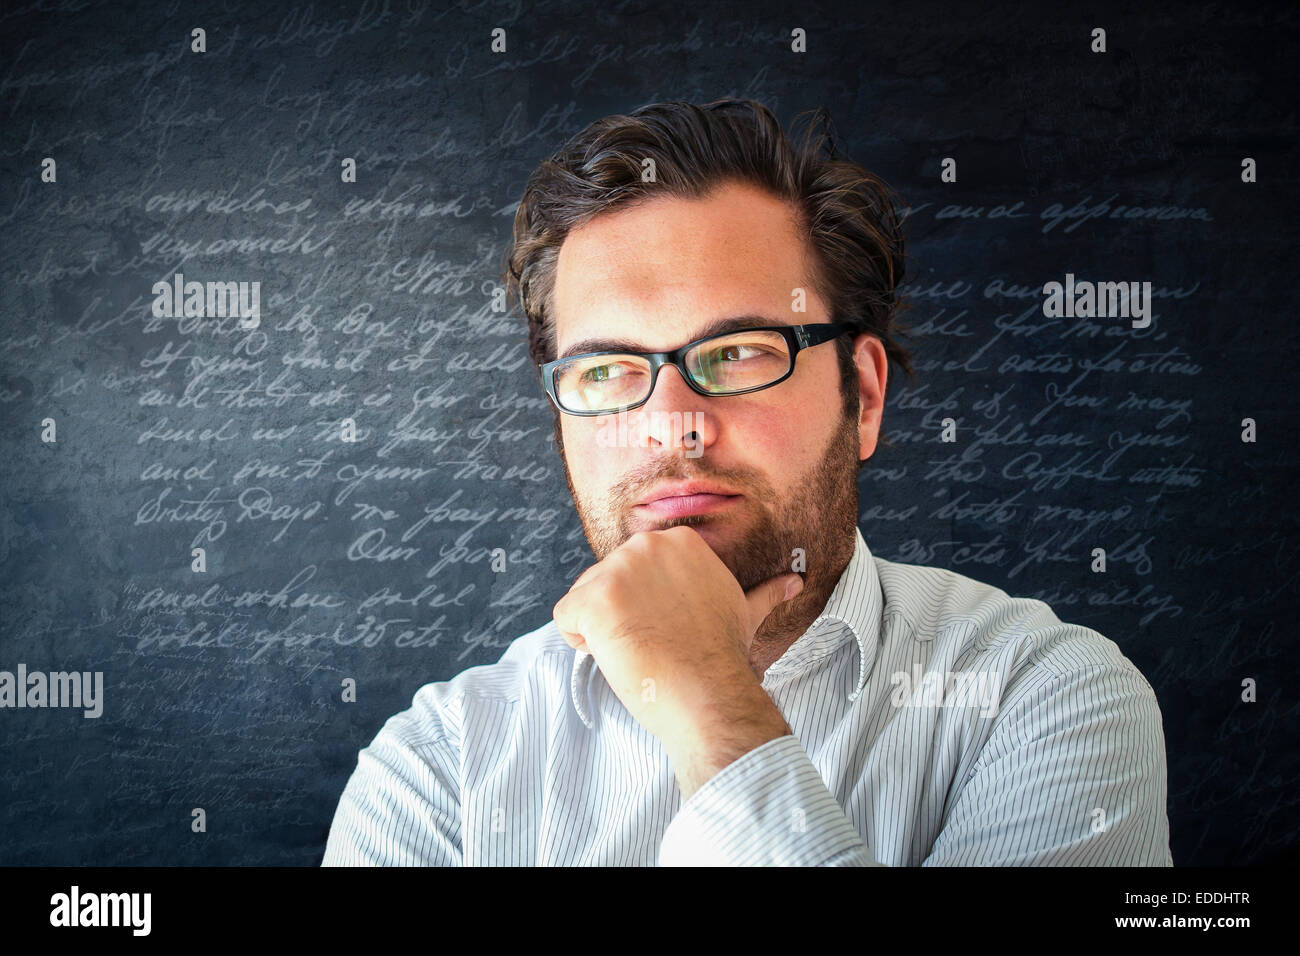 Portrait of pensive man with full beard wearing glasses in front of dark background with writings - Stock Image